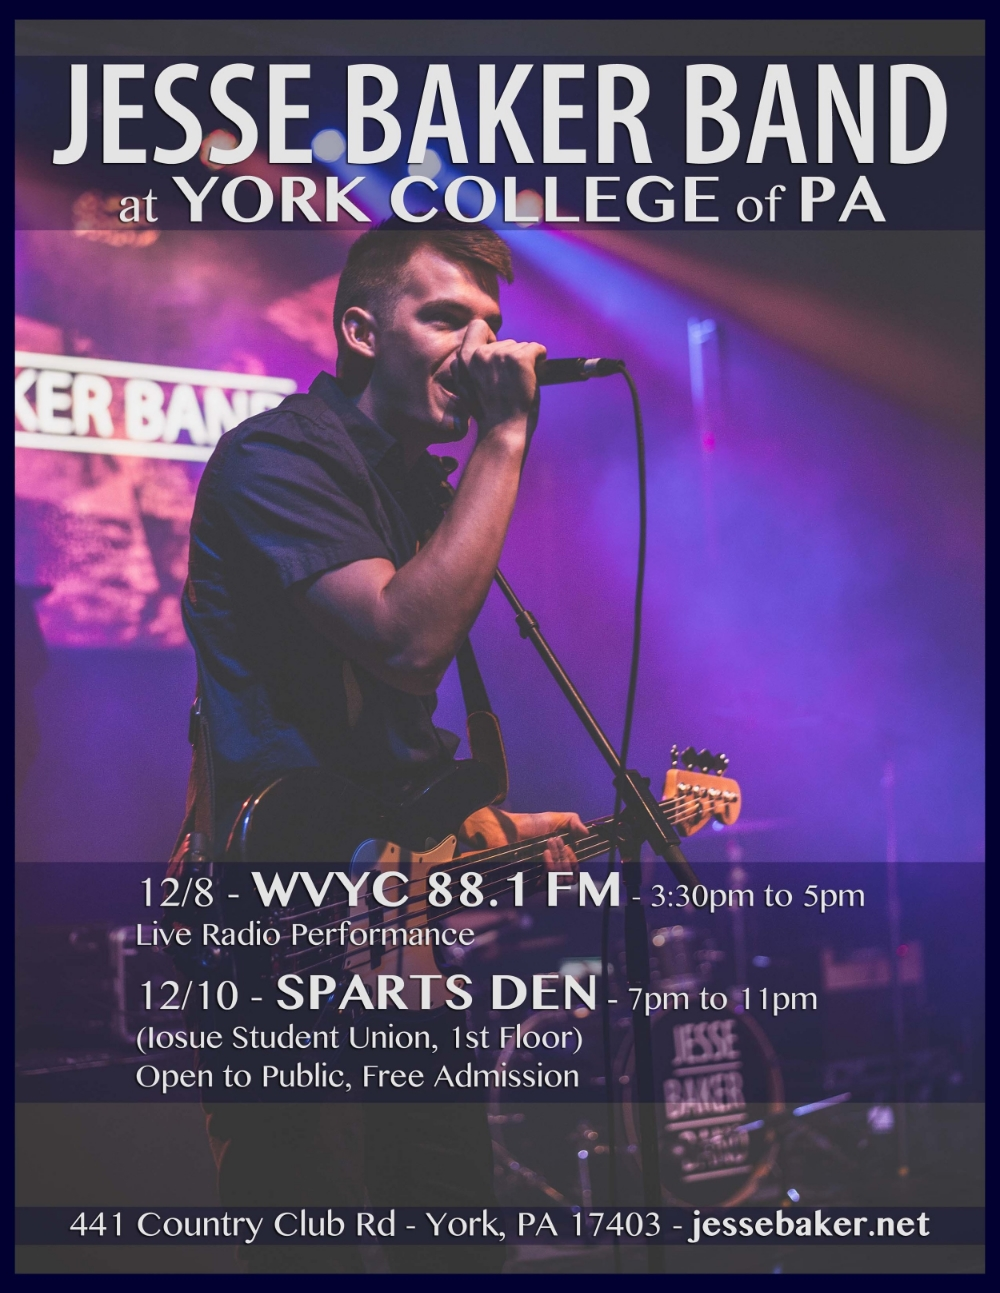 Jesse Baker Band at WVYC 88.1 FM, York College of PA